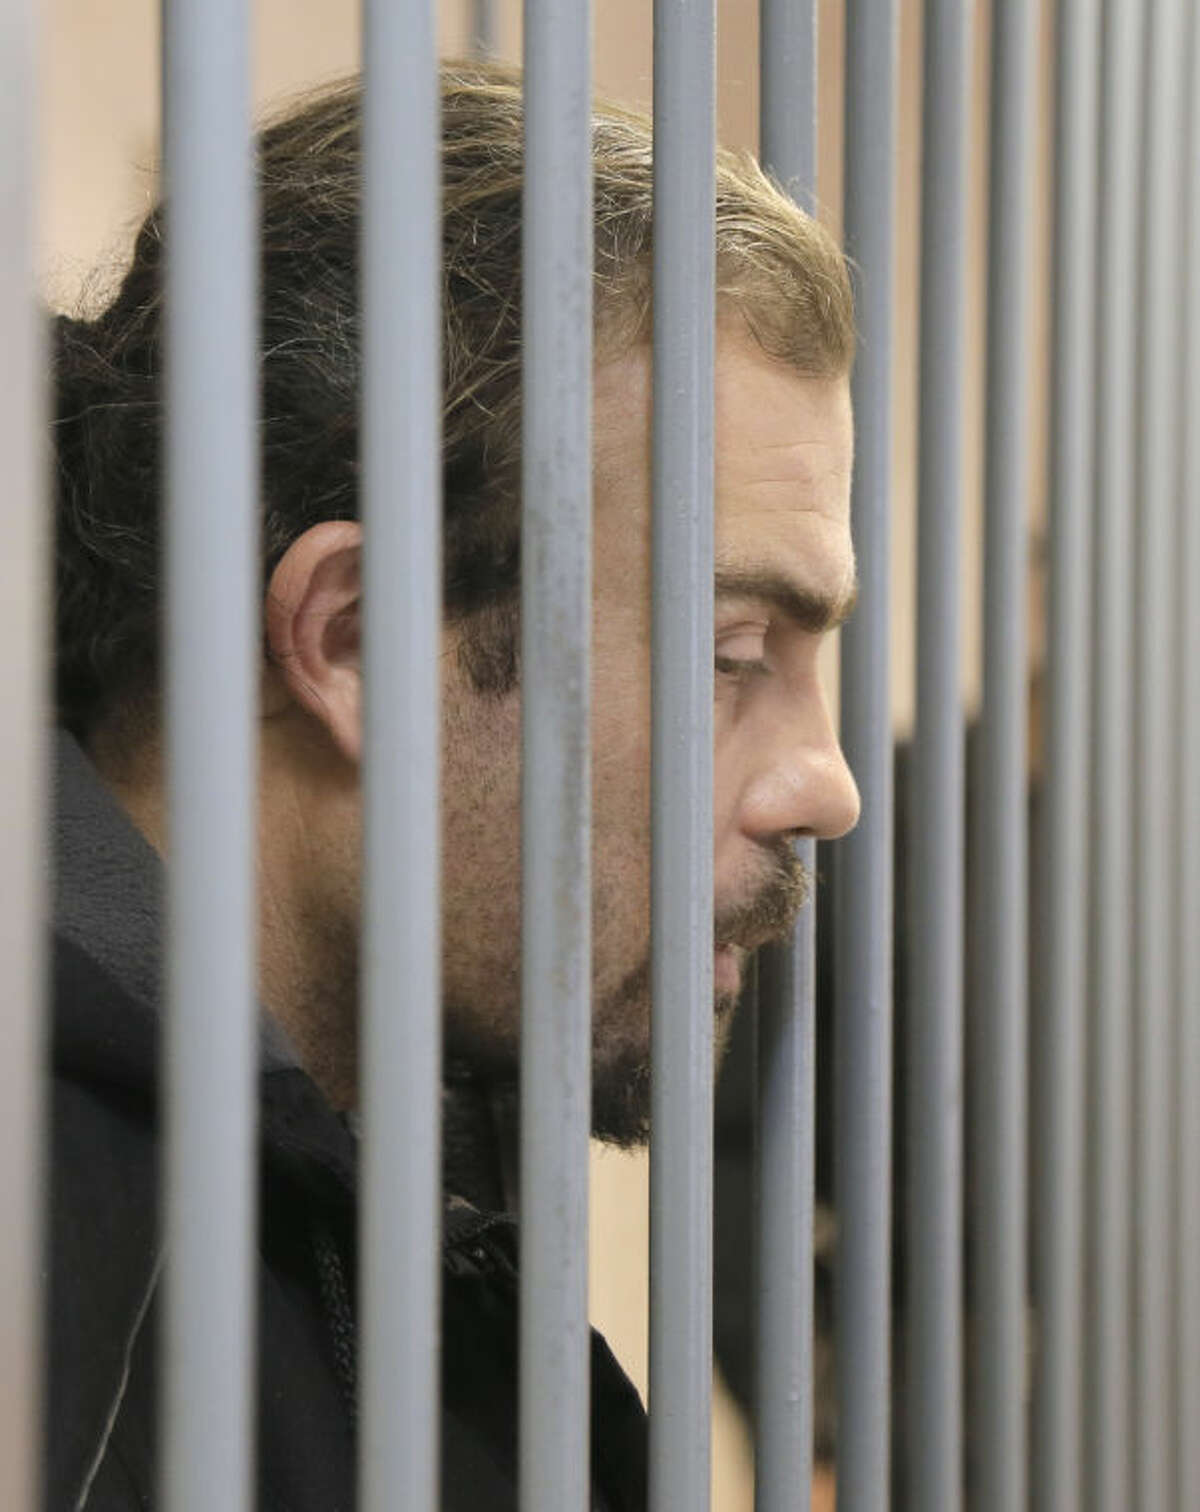 Greenpeace activist Pisanu Francesco Pierre of France sits in a cage in a court room in Murmansk, Russia, on Thursday, Sept. 26, 2013. A Russian court on Thursday jailed a photographer and two Greenpeace activists who were part of the 30-member Greenpeace team protesting near an oil platform in the Arctic last week. The Coast Guard disrupted an attempt by Greenpeace activists on Sept. 18 to scale the Russian Arctic platform. Russian authorities seized Greenpeace's ship the next day and towed it with the 30 activists aboard to Murmansk. The activists are being investigated for piracy. (AP Photo/Efrem Lukatsky)